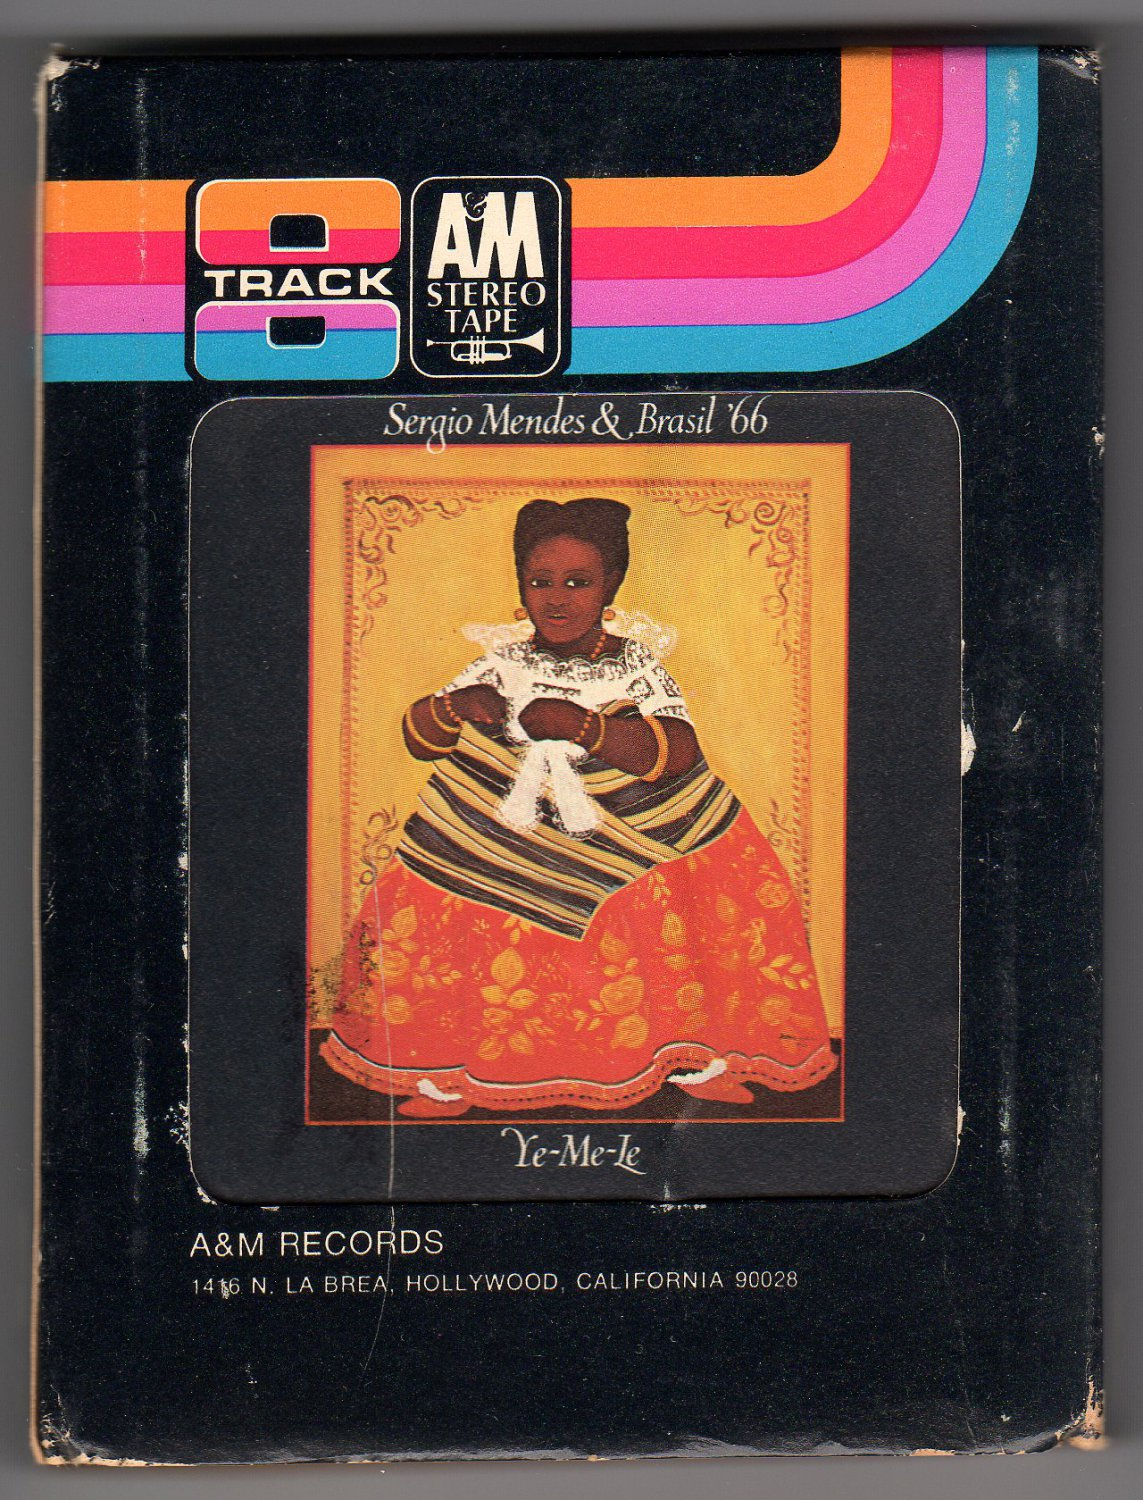 Sergio Mendes & Brasil '66 - Ye-Me-Le 1969 A&M A45 8-TRACK TAPE